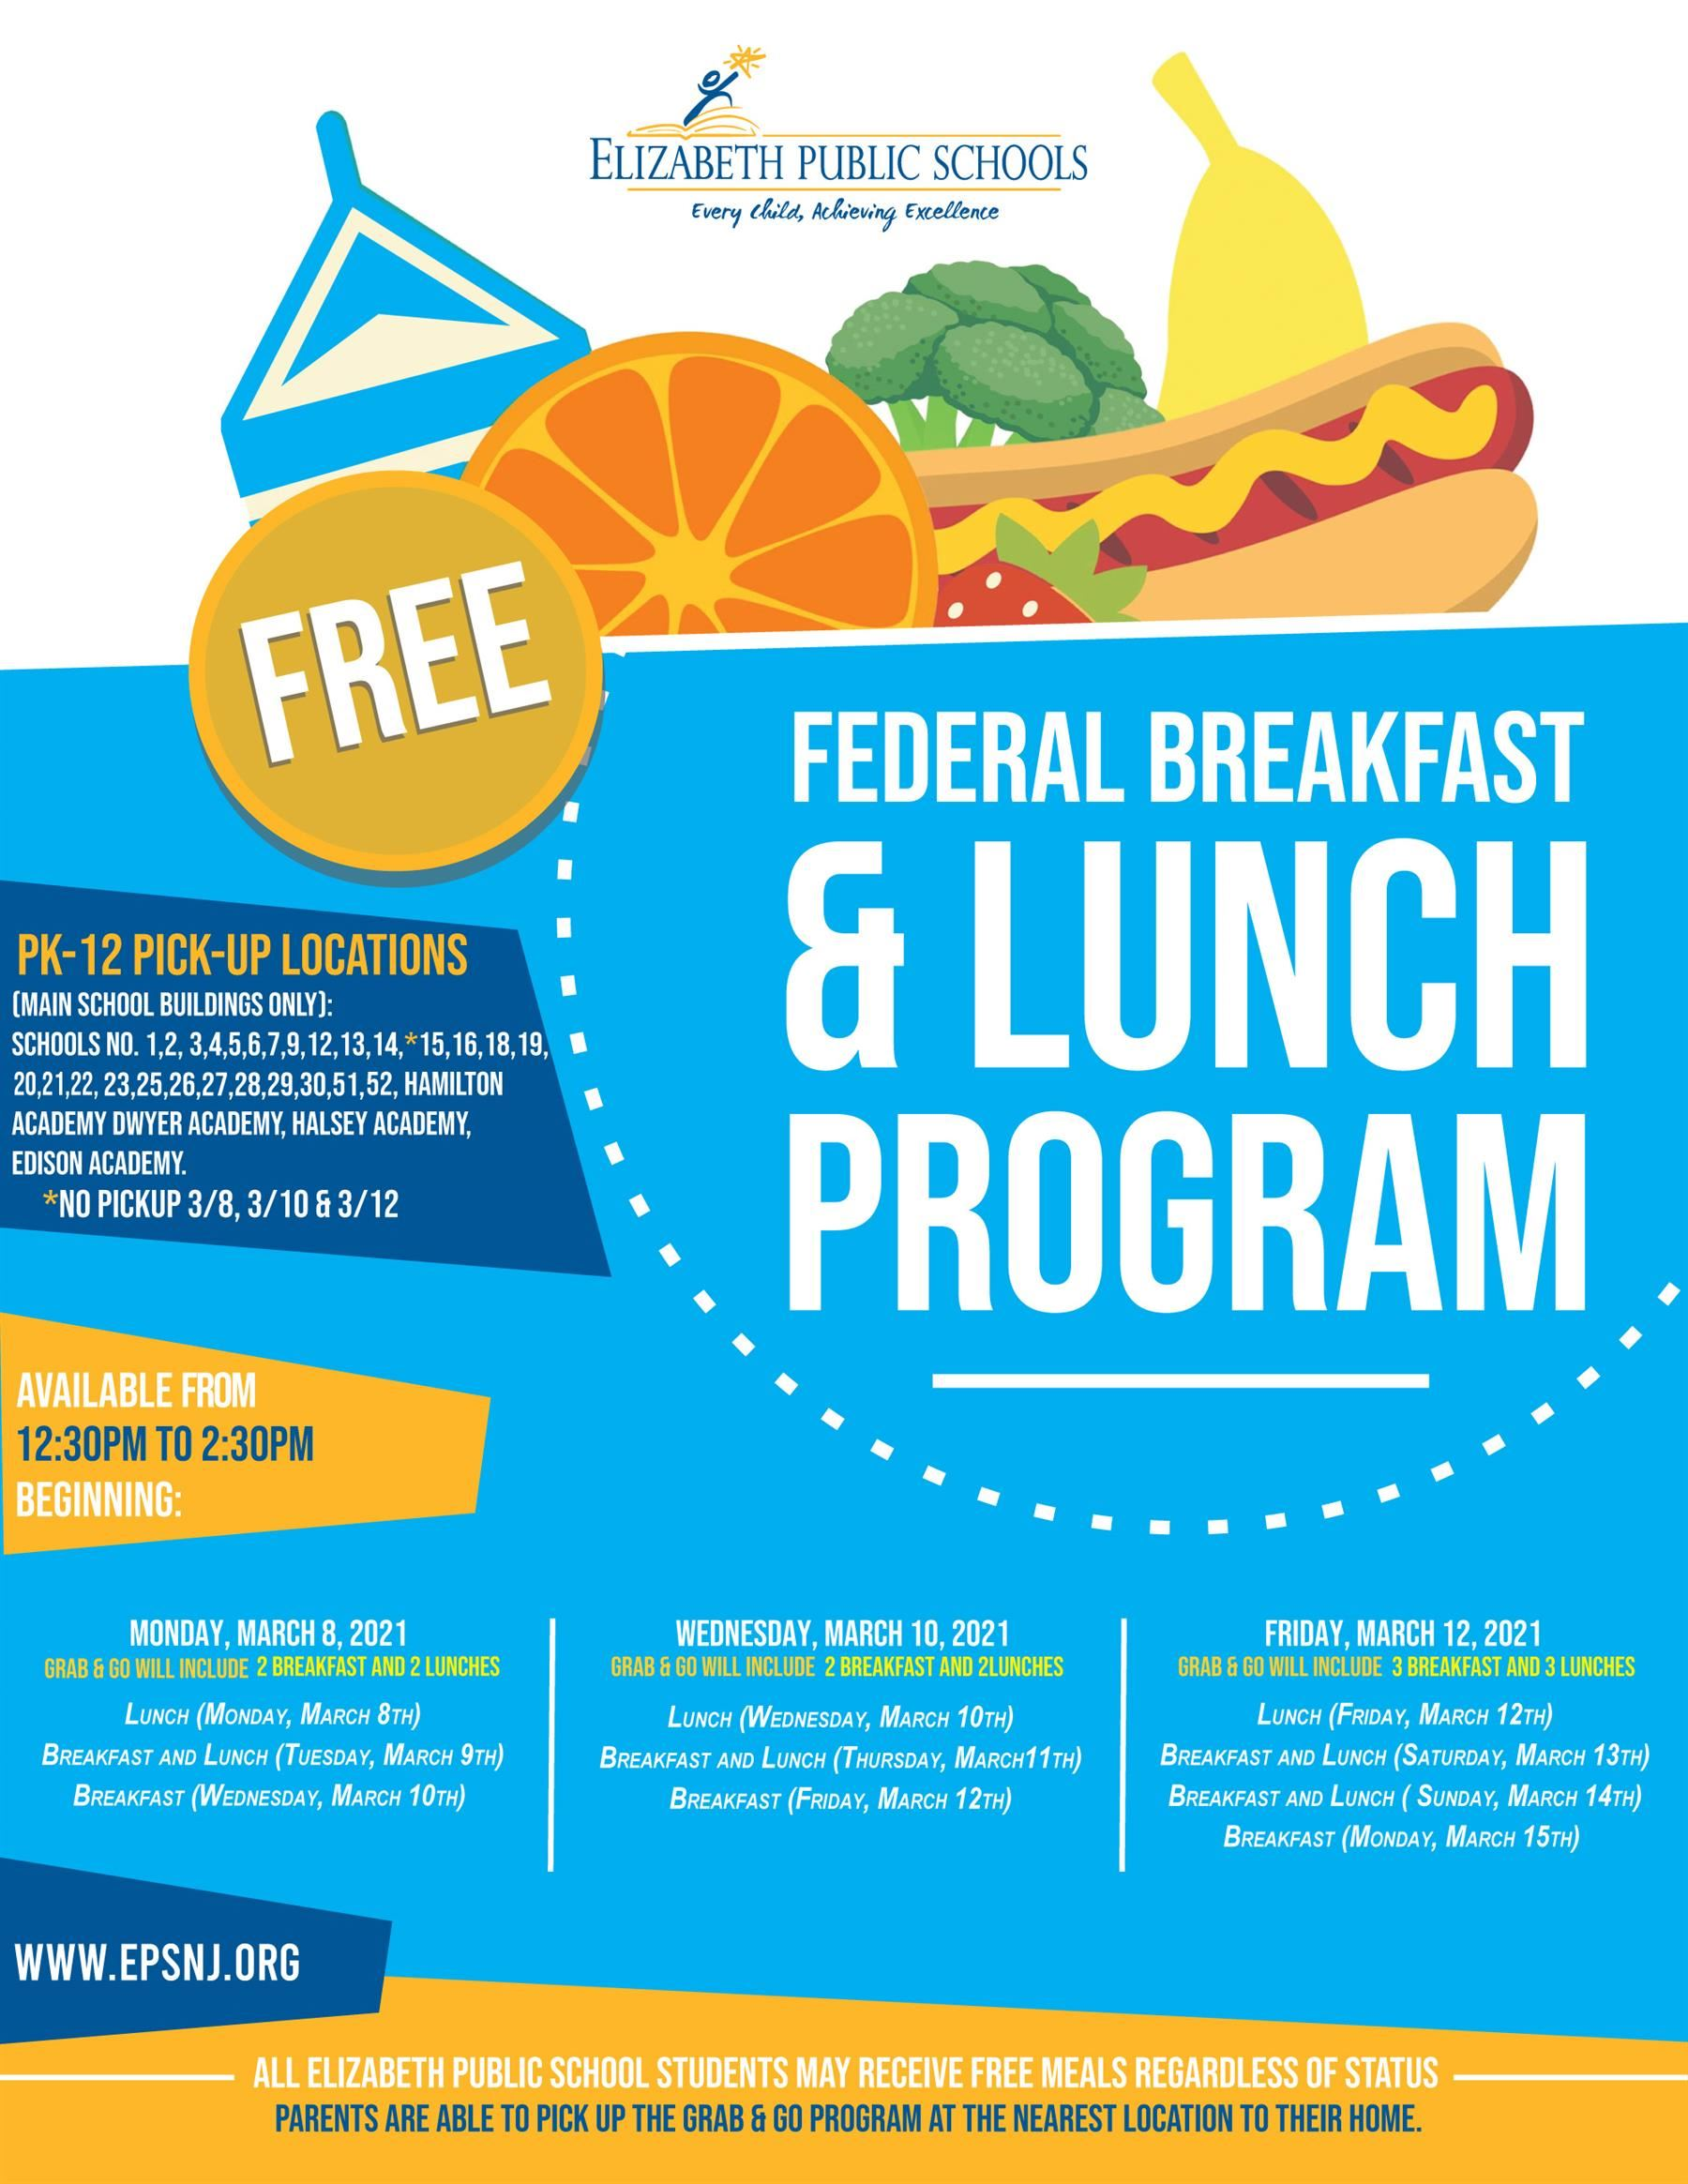 Lunch_Program_Flyer3-8.jpg